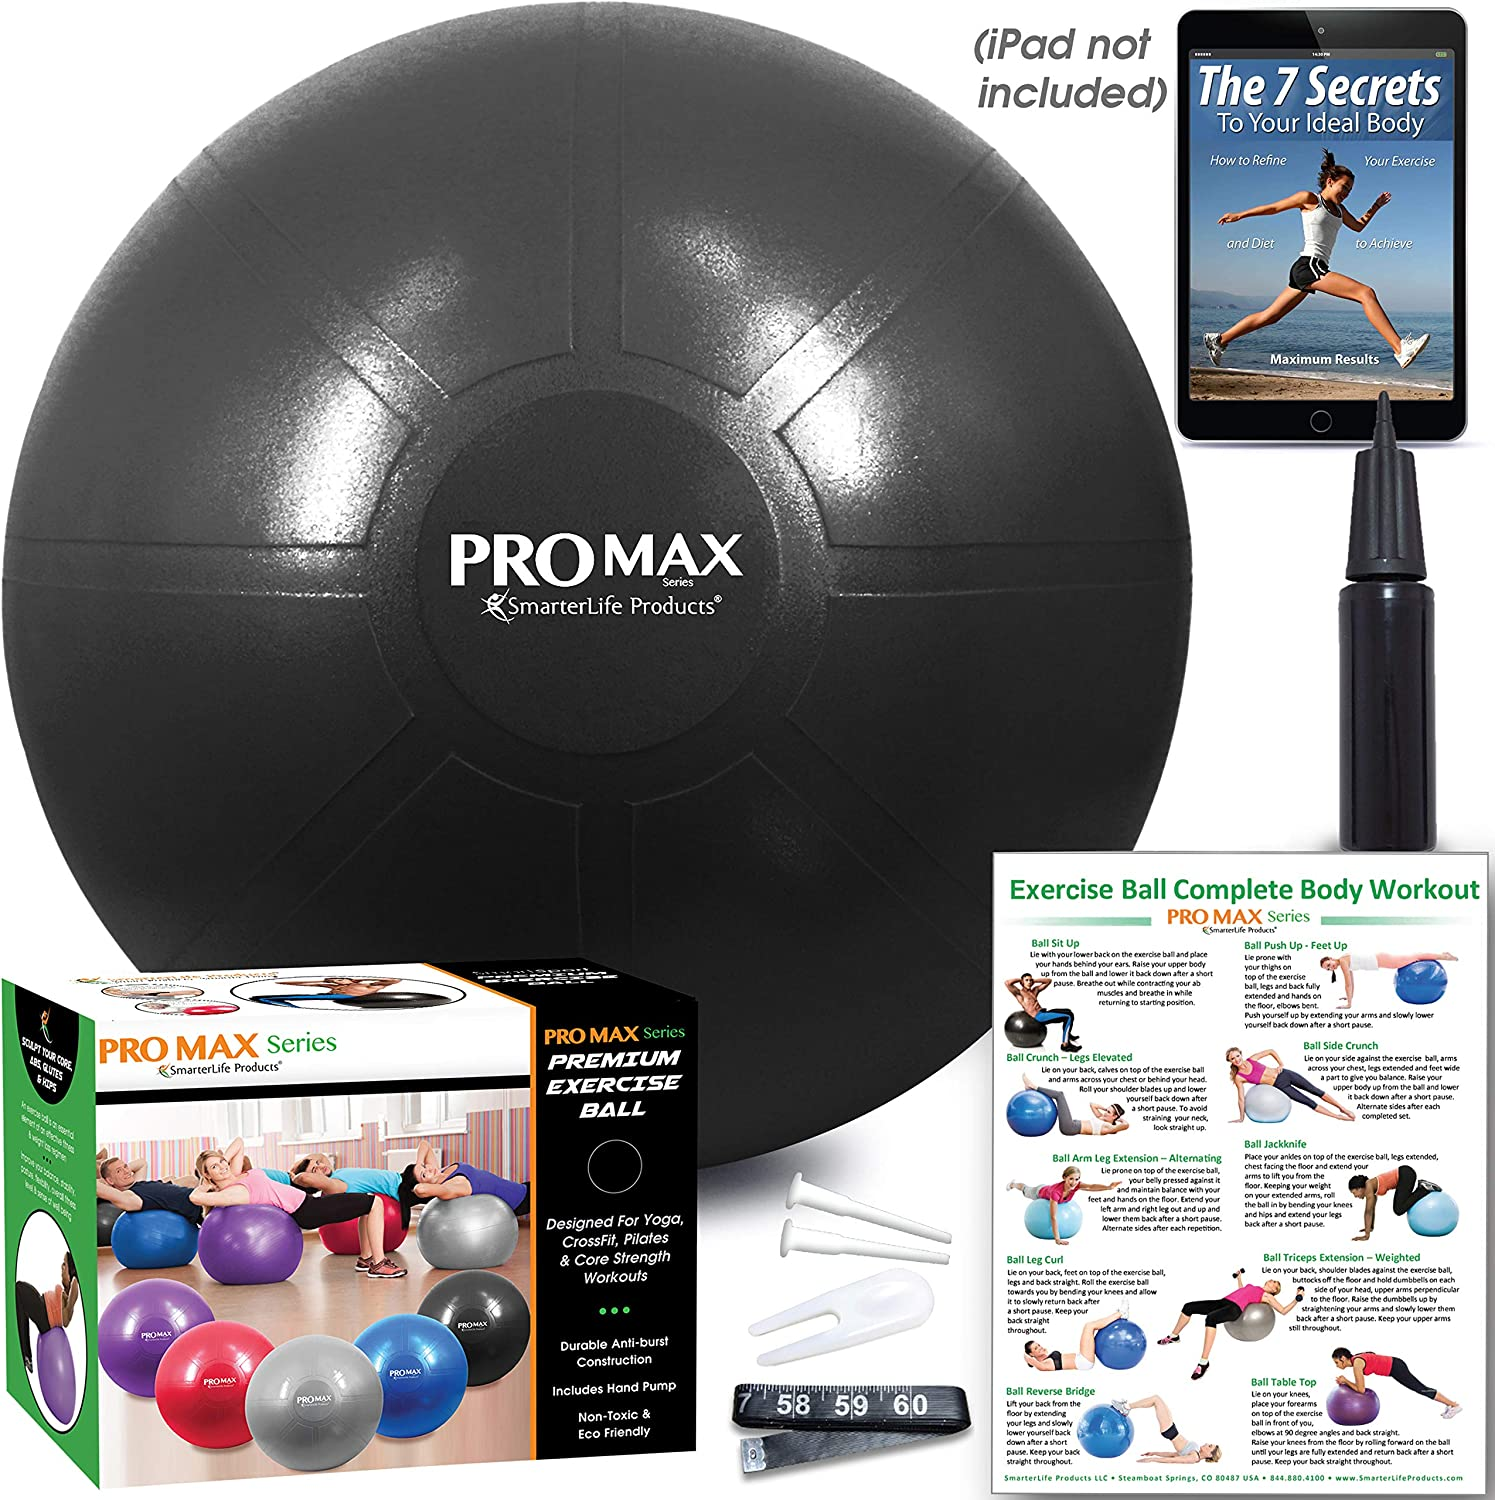 Birthing Therapy Classroom Flexible Seating Professional Grade Extra Thick Yoga Ball for Balance Fitness Pilates Office Ball Chair Stability SmarterLife PRO MAX Exercise Ball